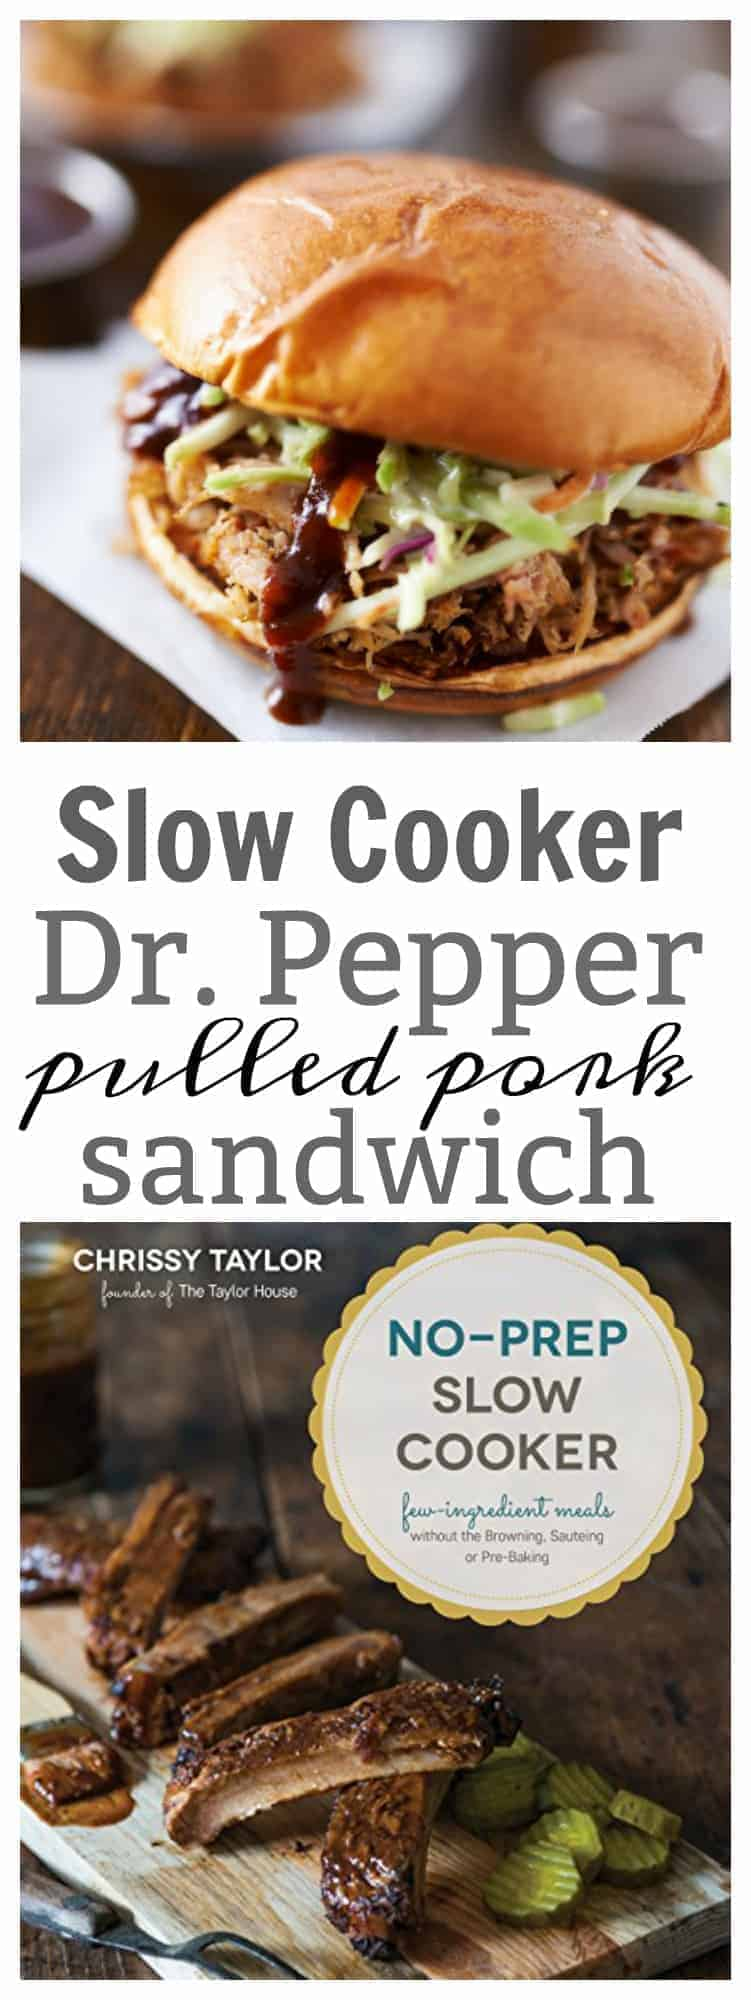 These Slow Cooker Dr. Pepper Pulled Pork Sandwich are amazing, and would be great for a party! There is no pre-cooking and the ingredients are simple but pack a flavorful punch.